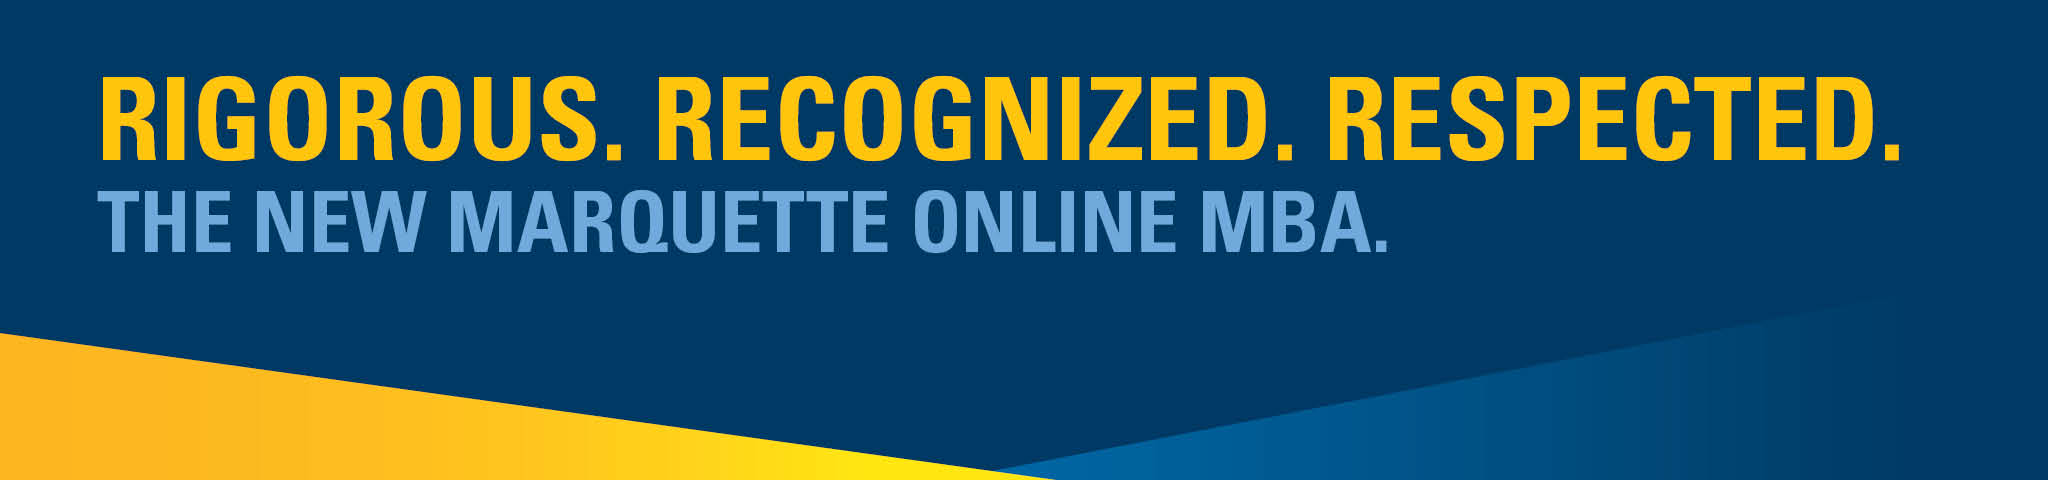 Rigorous, Recognized, Respected.  The new Marquette Online MBA.